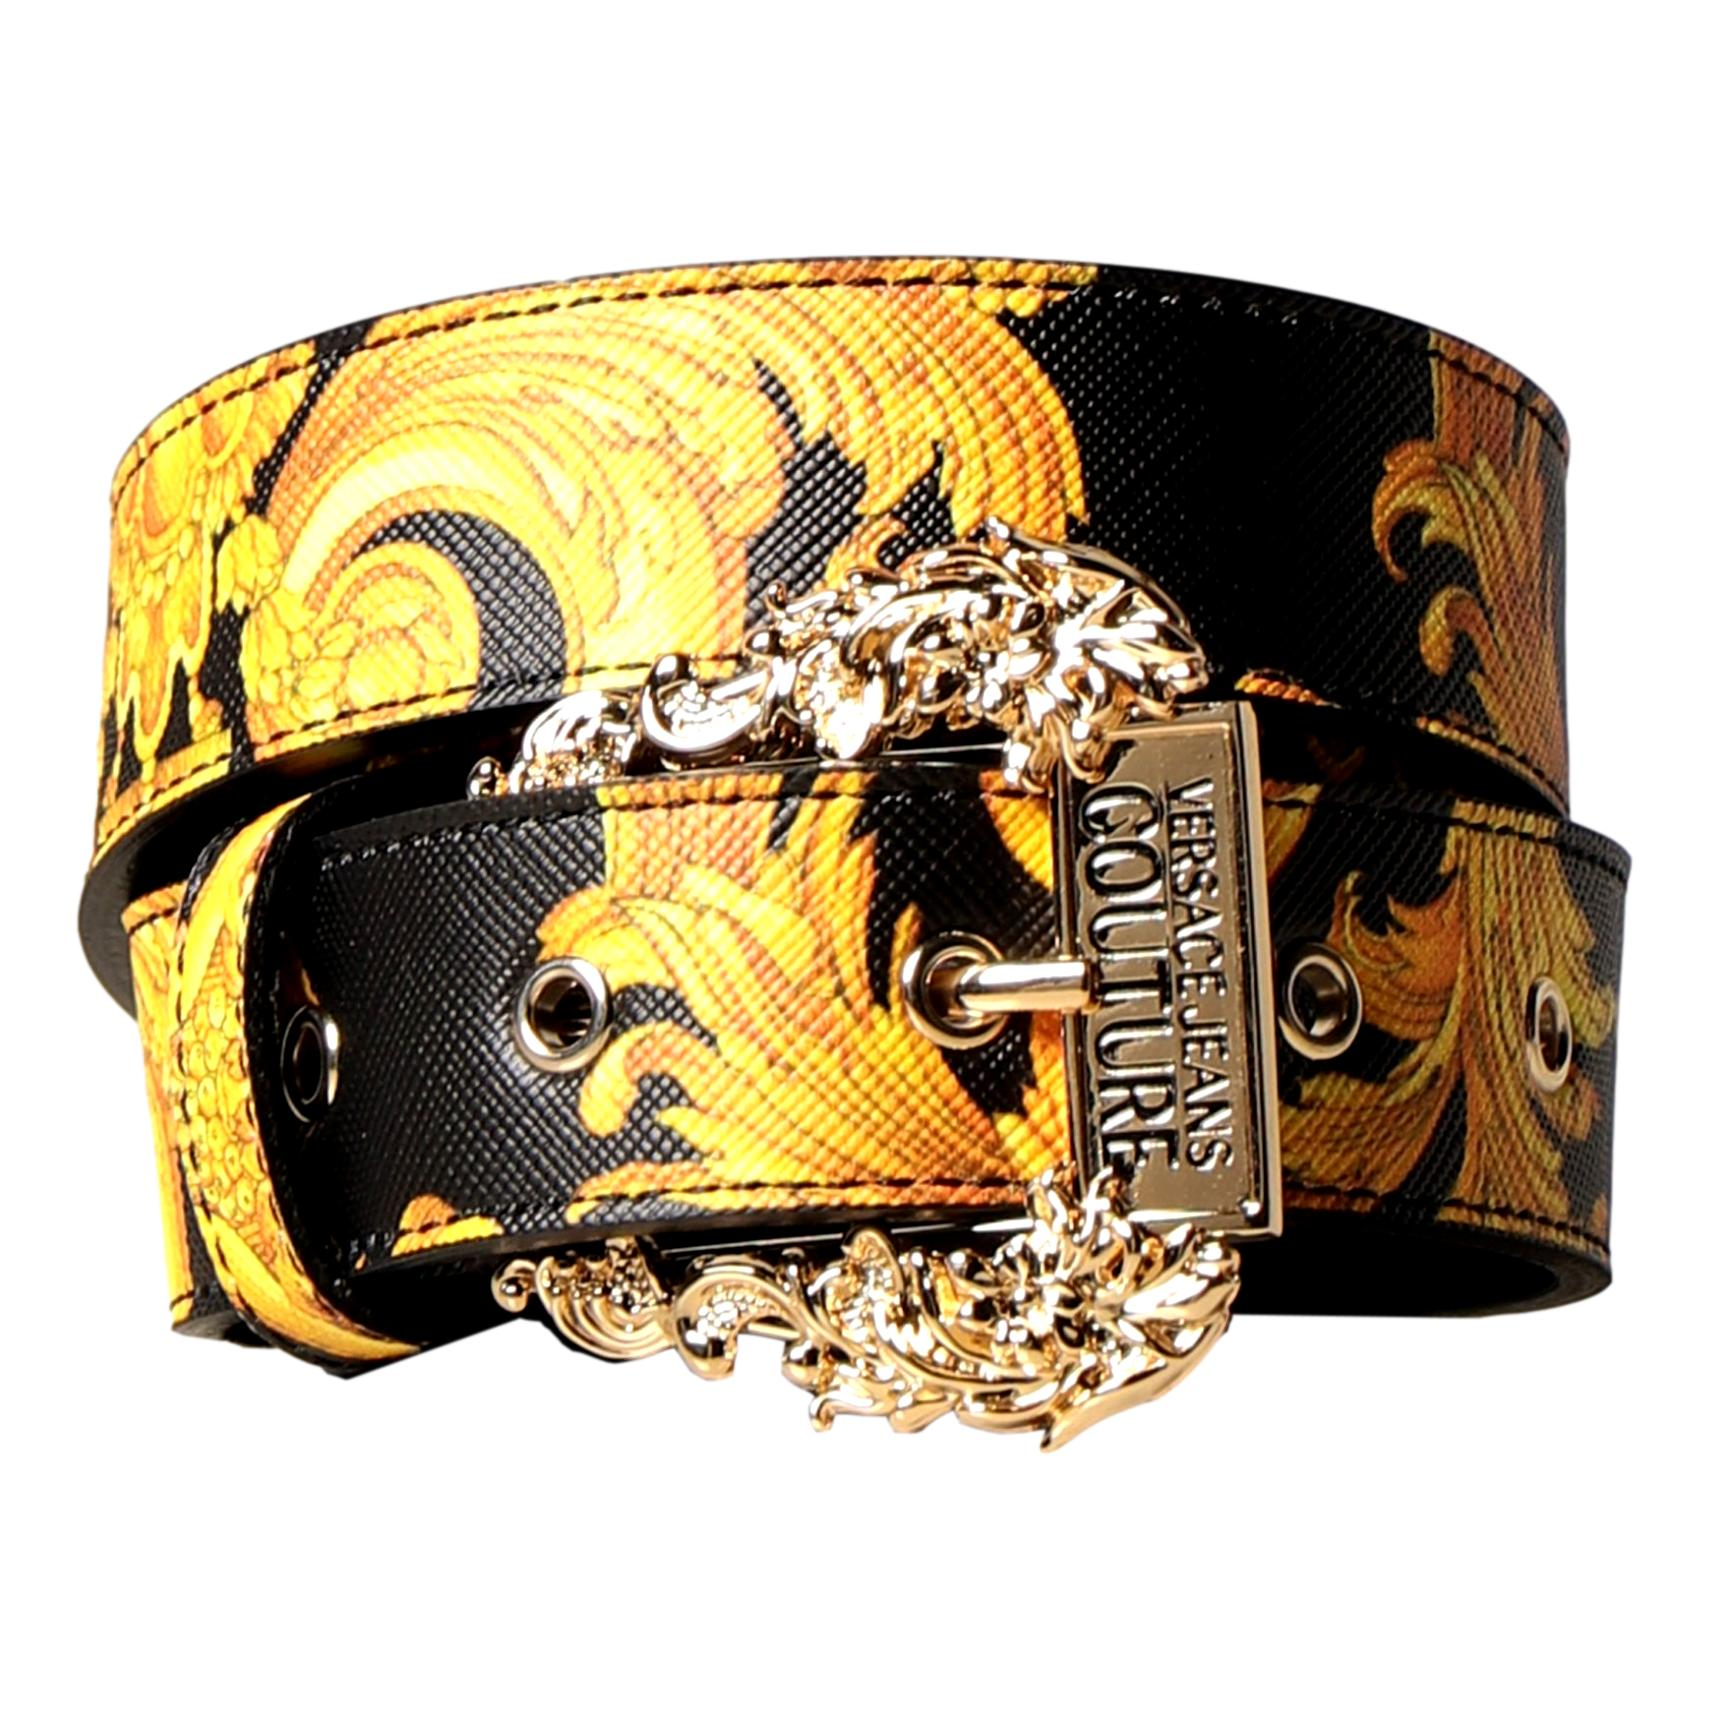 Versace Jeans Couture belt in baroque print synthetic leather VERSACE JEANS COUTURE |  | D8VWAF01 71880M27